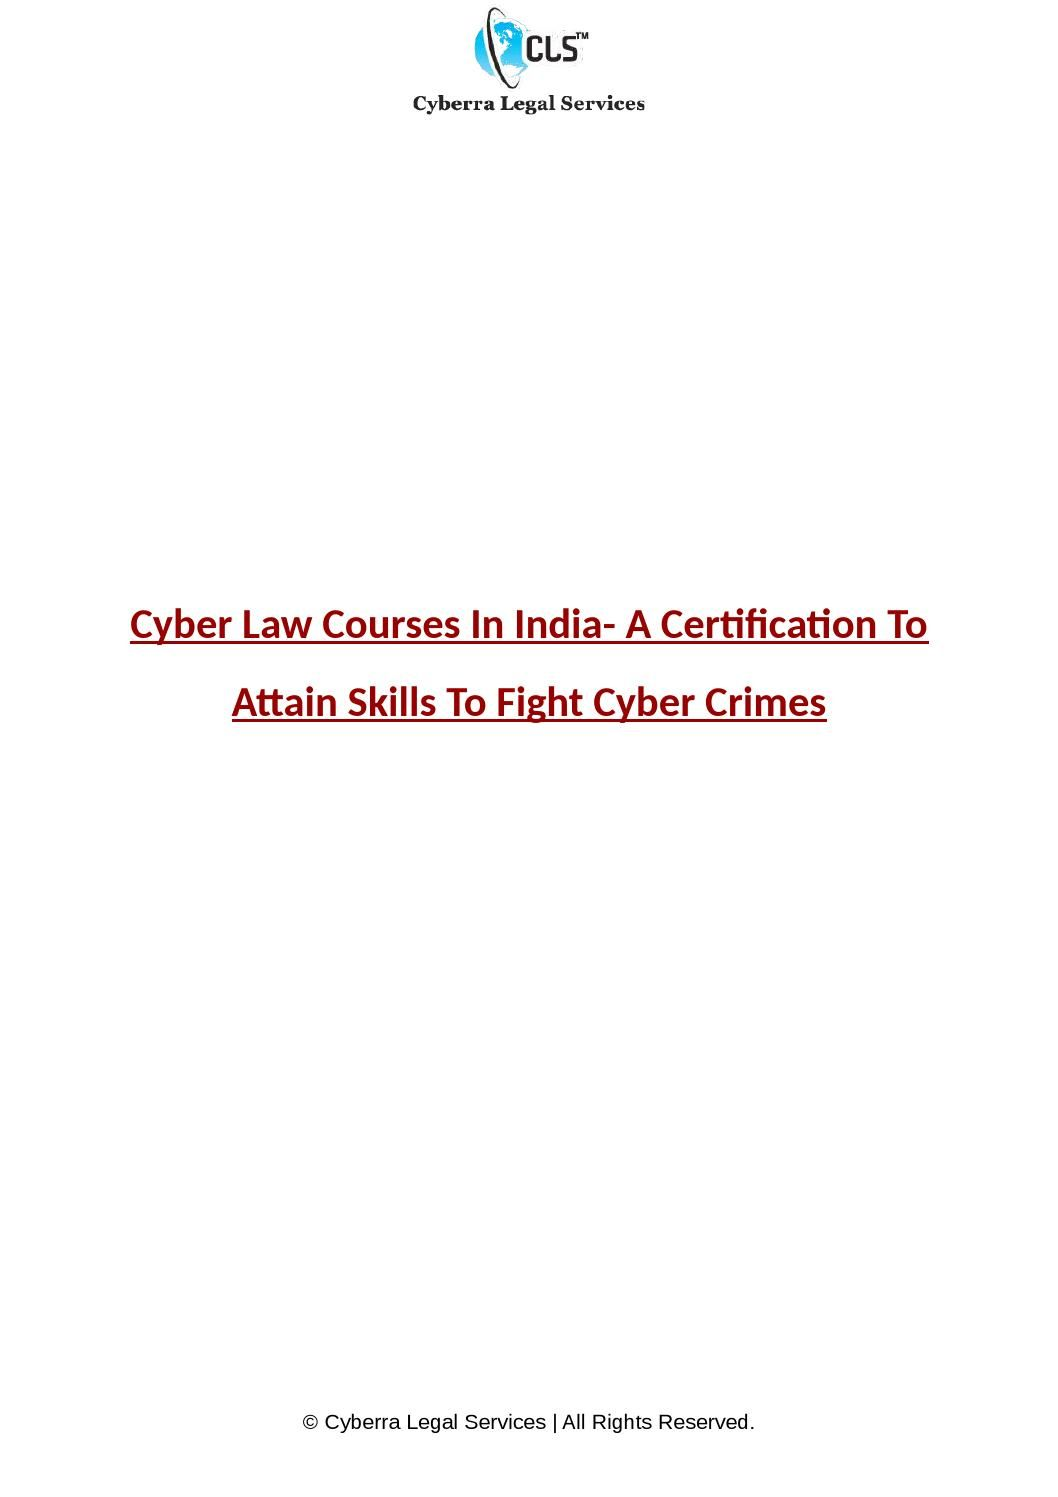 Cyber Law Courses In India A Certification To Attain Skills To Fight